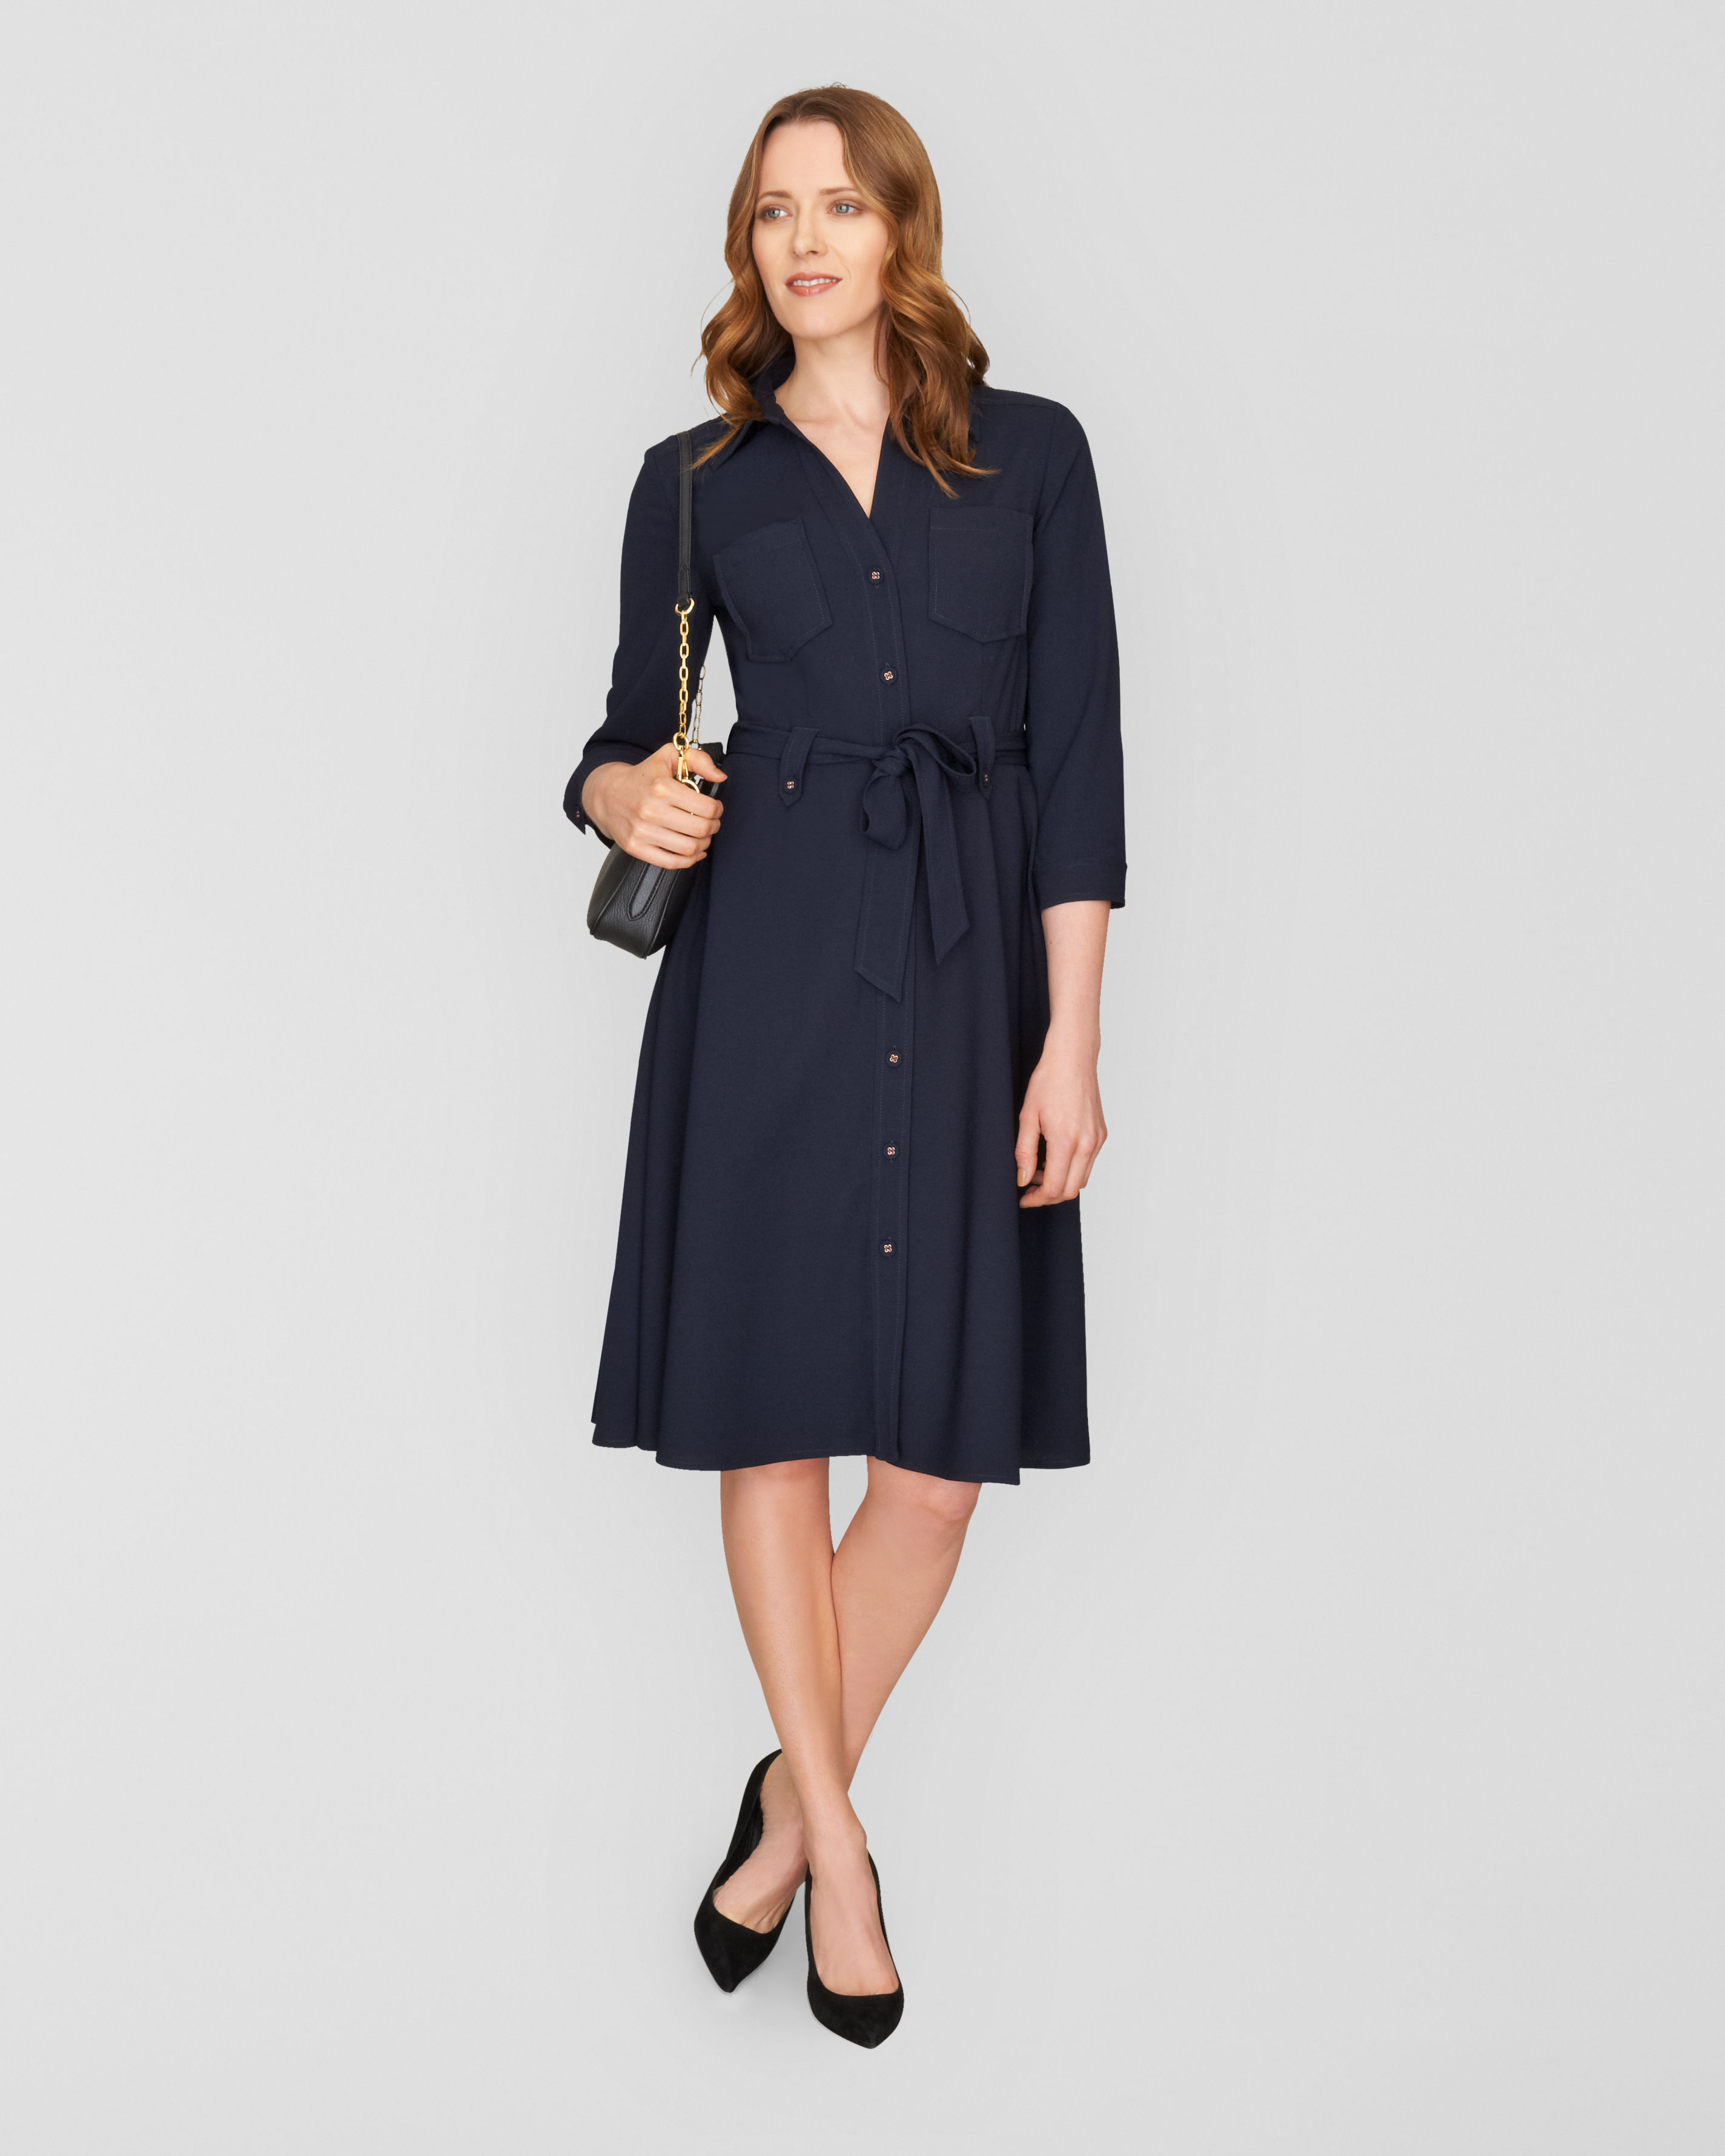 ddeca59bf78 Lyst - Jaeger Belted Shirt Dress in Blue